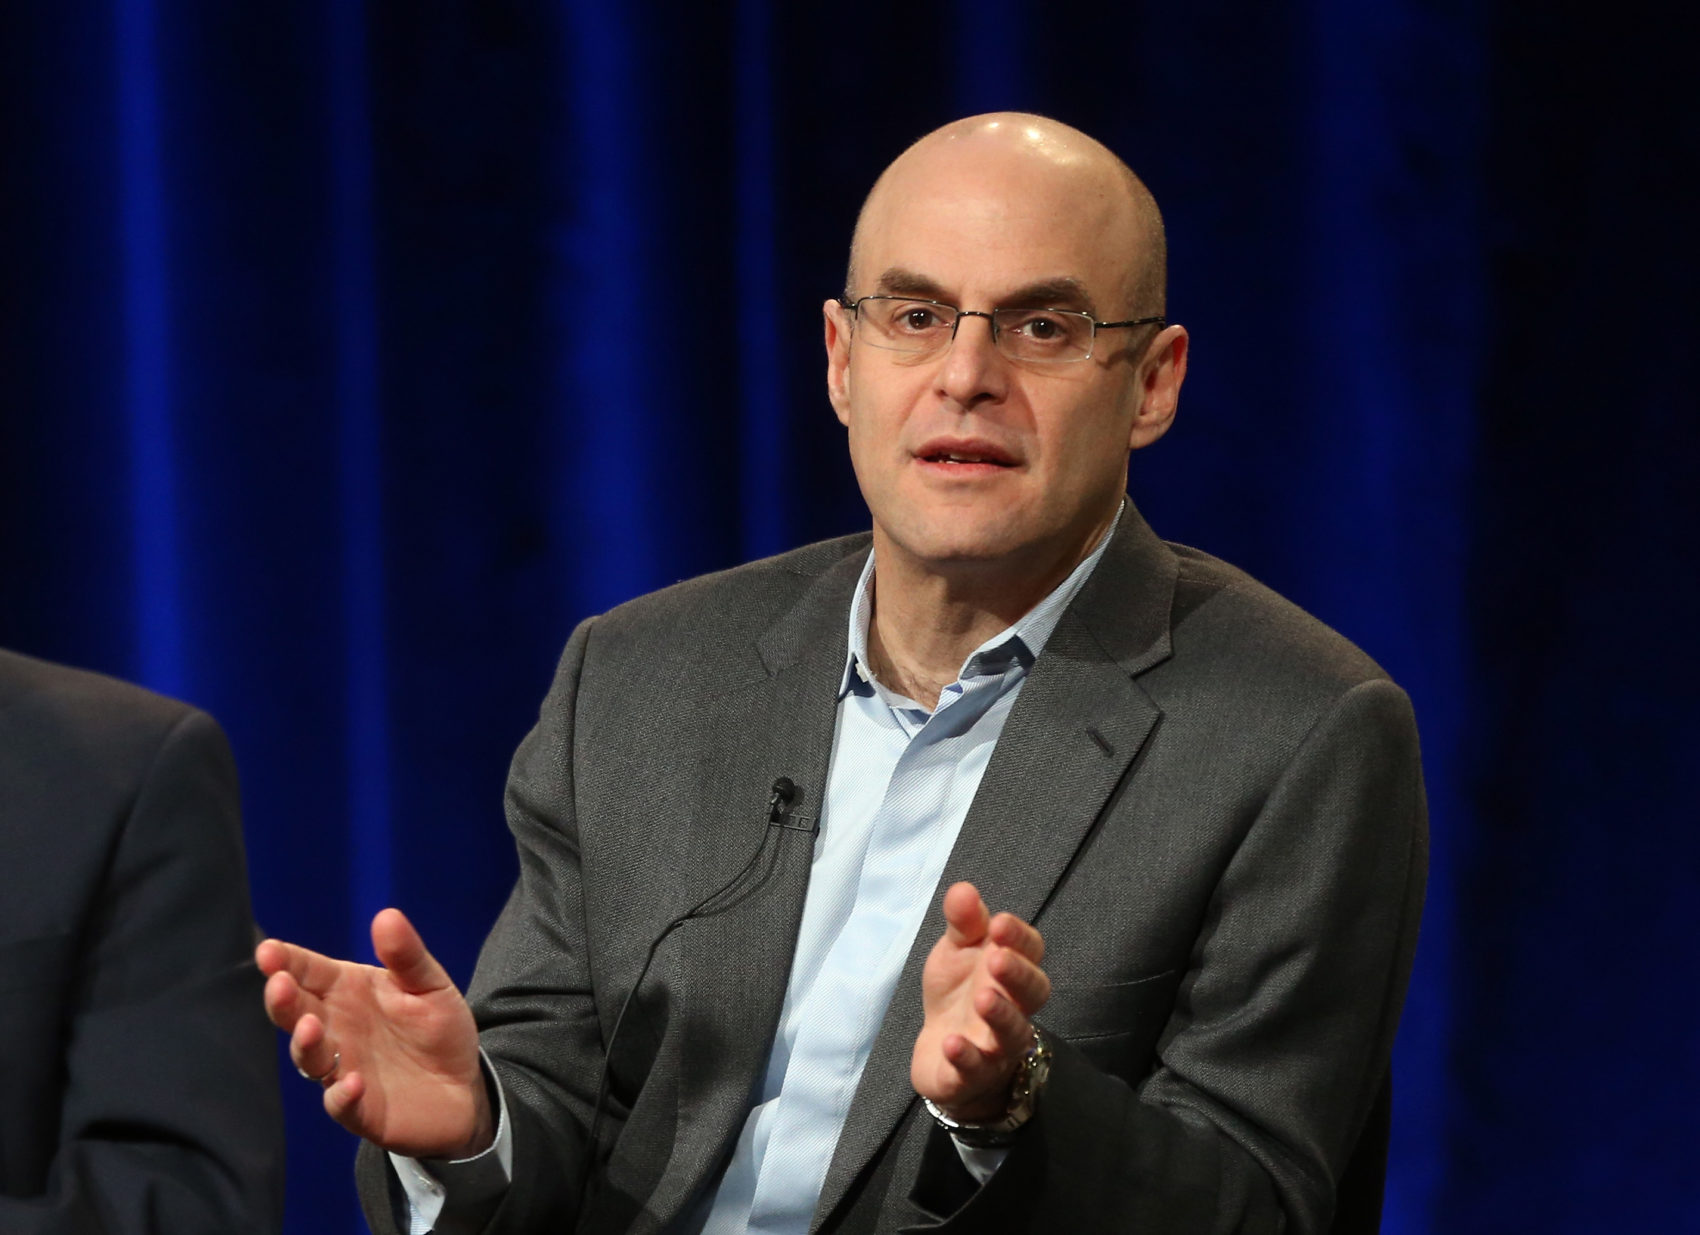 Peter Sagal has hosted Wait Wait ... Don't Tell Me! on NPR since 1998. (Frederick M. Brown/Getty Images)